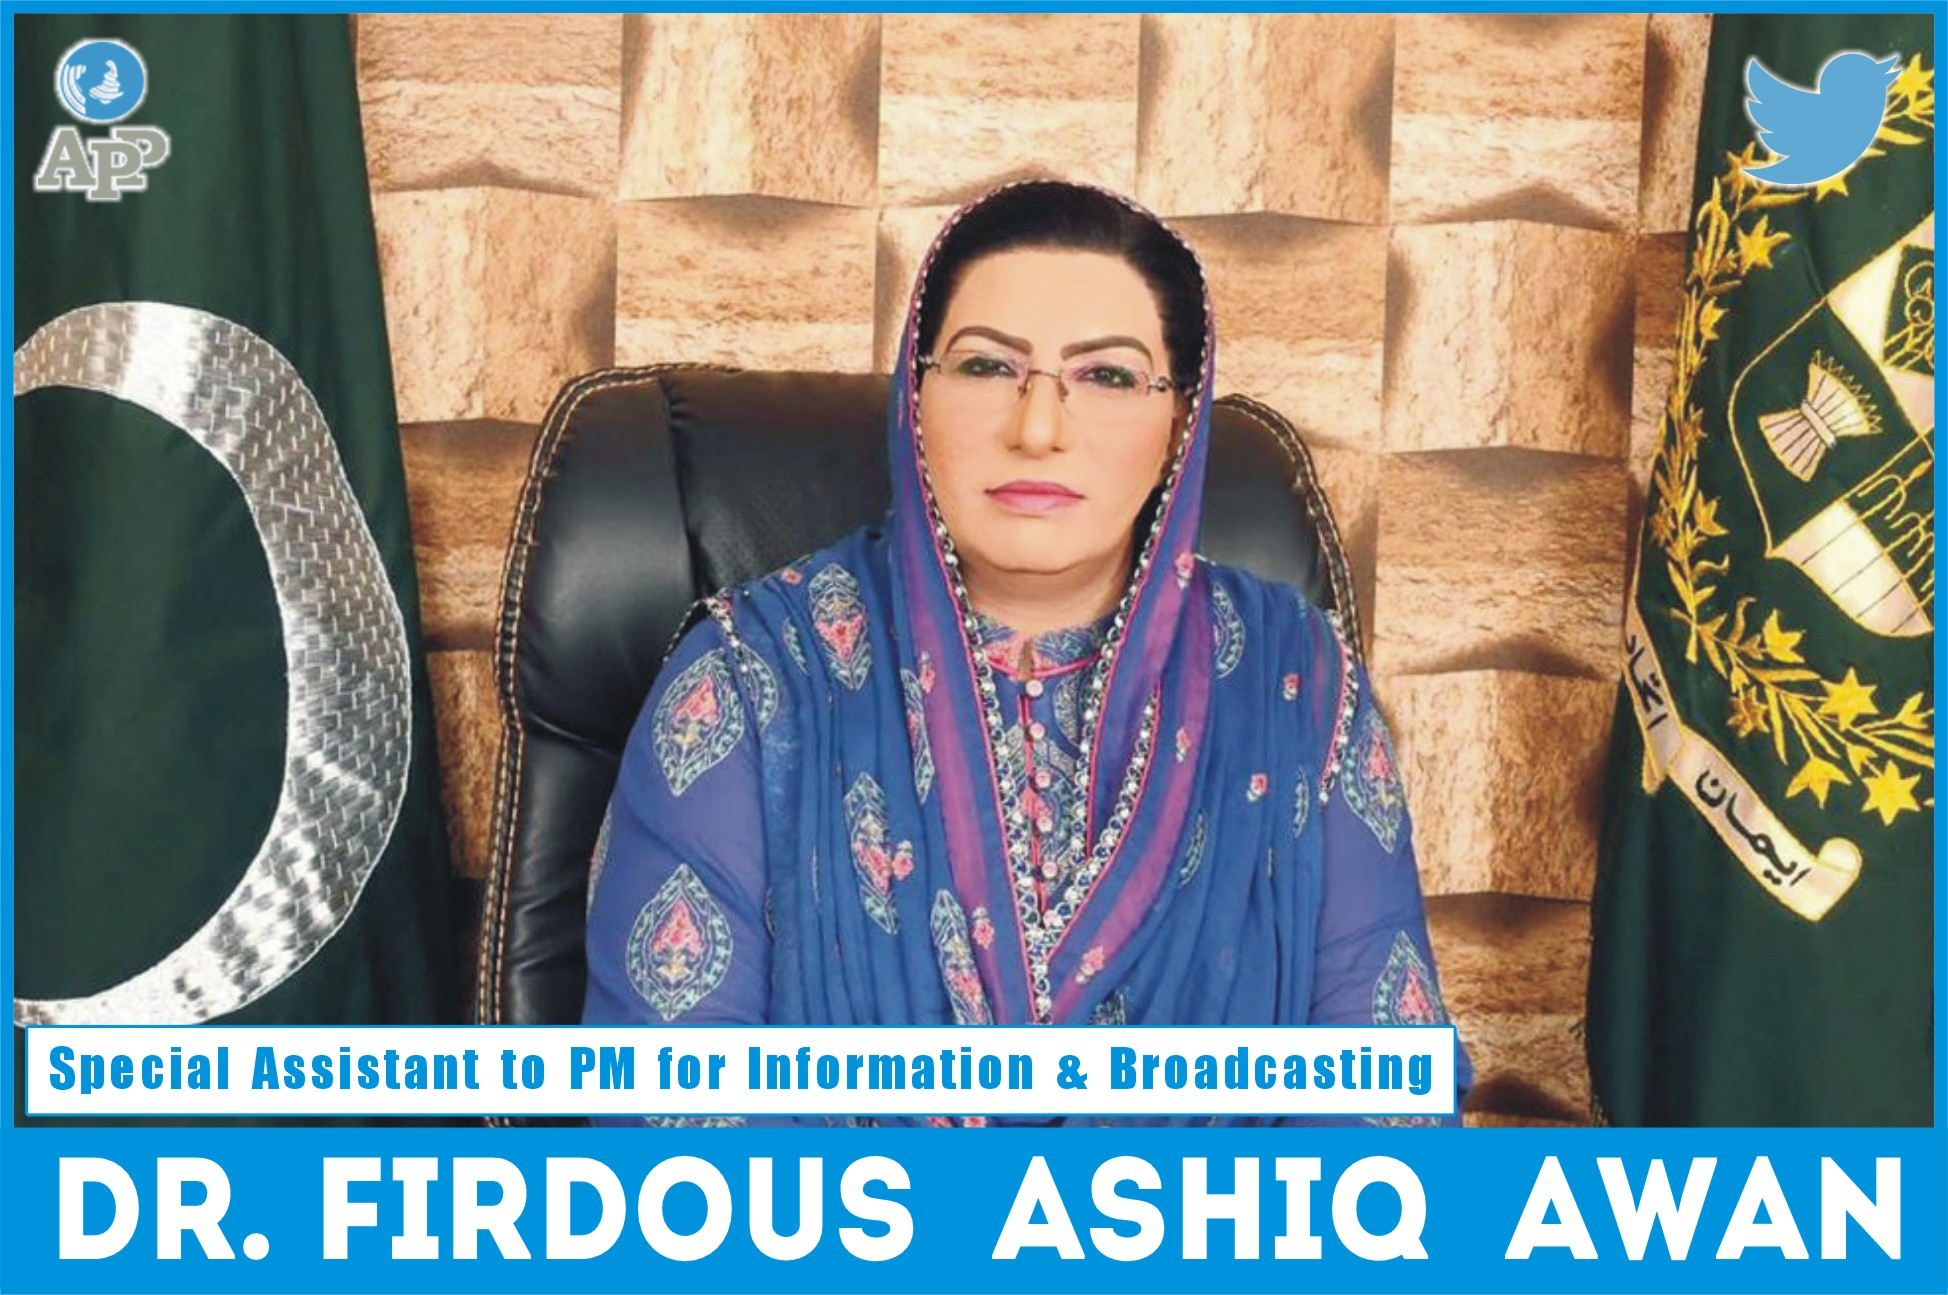 Crackdown on smuggling on PM's directives major step to provide relief to masses: Firdous   Associated Press Of Pakistan